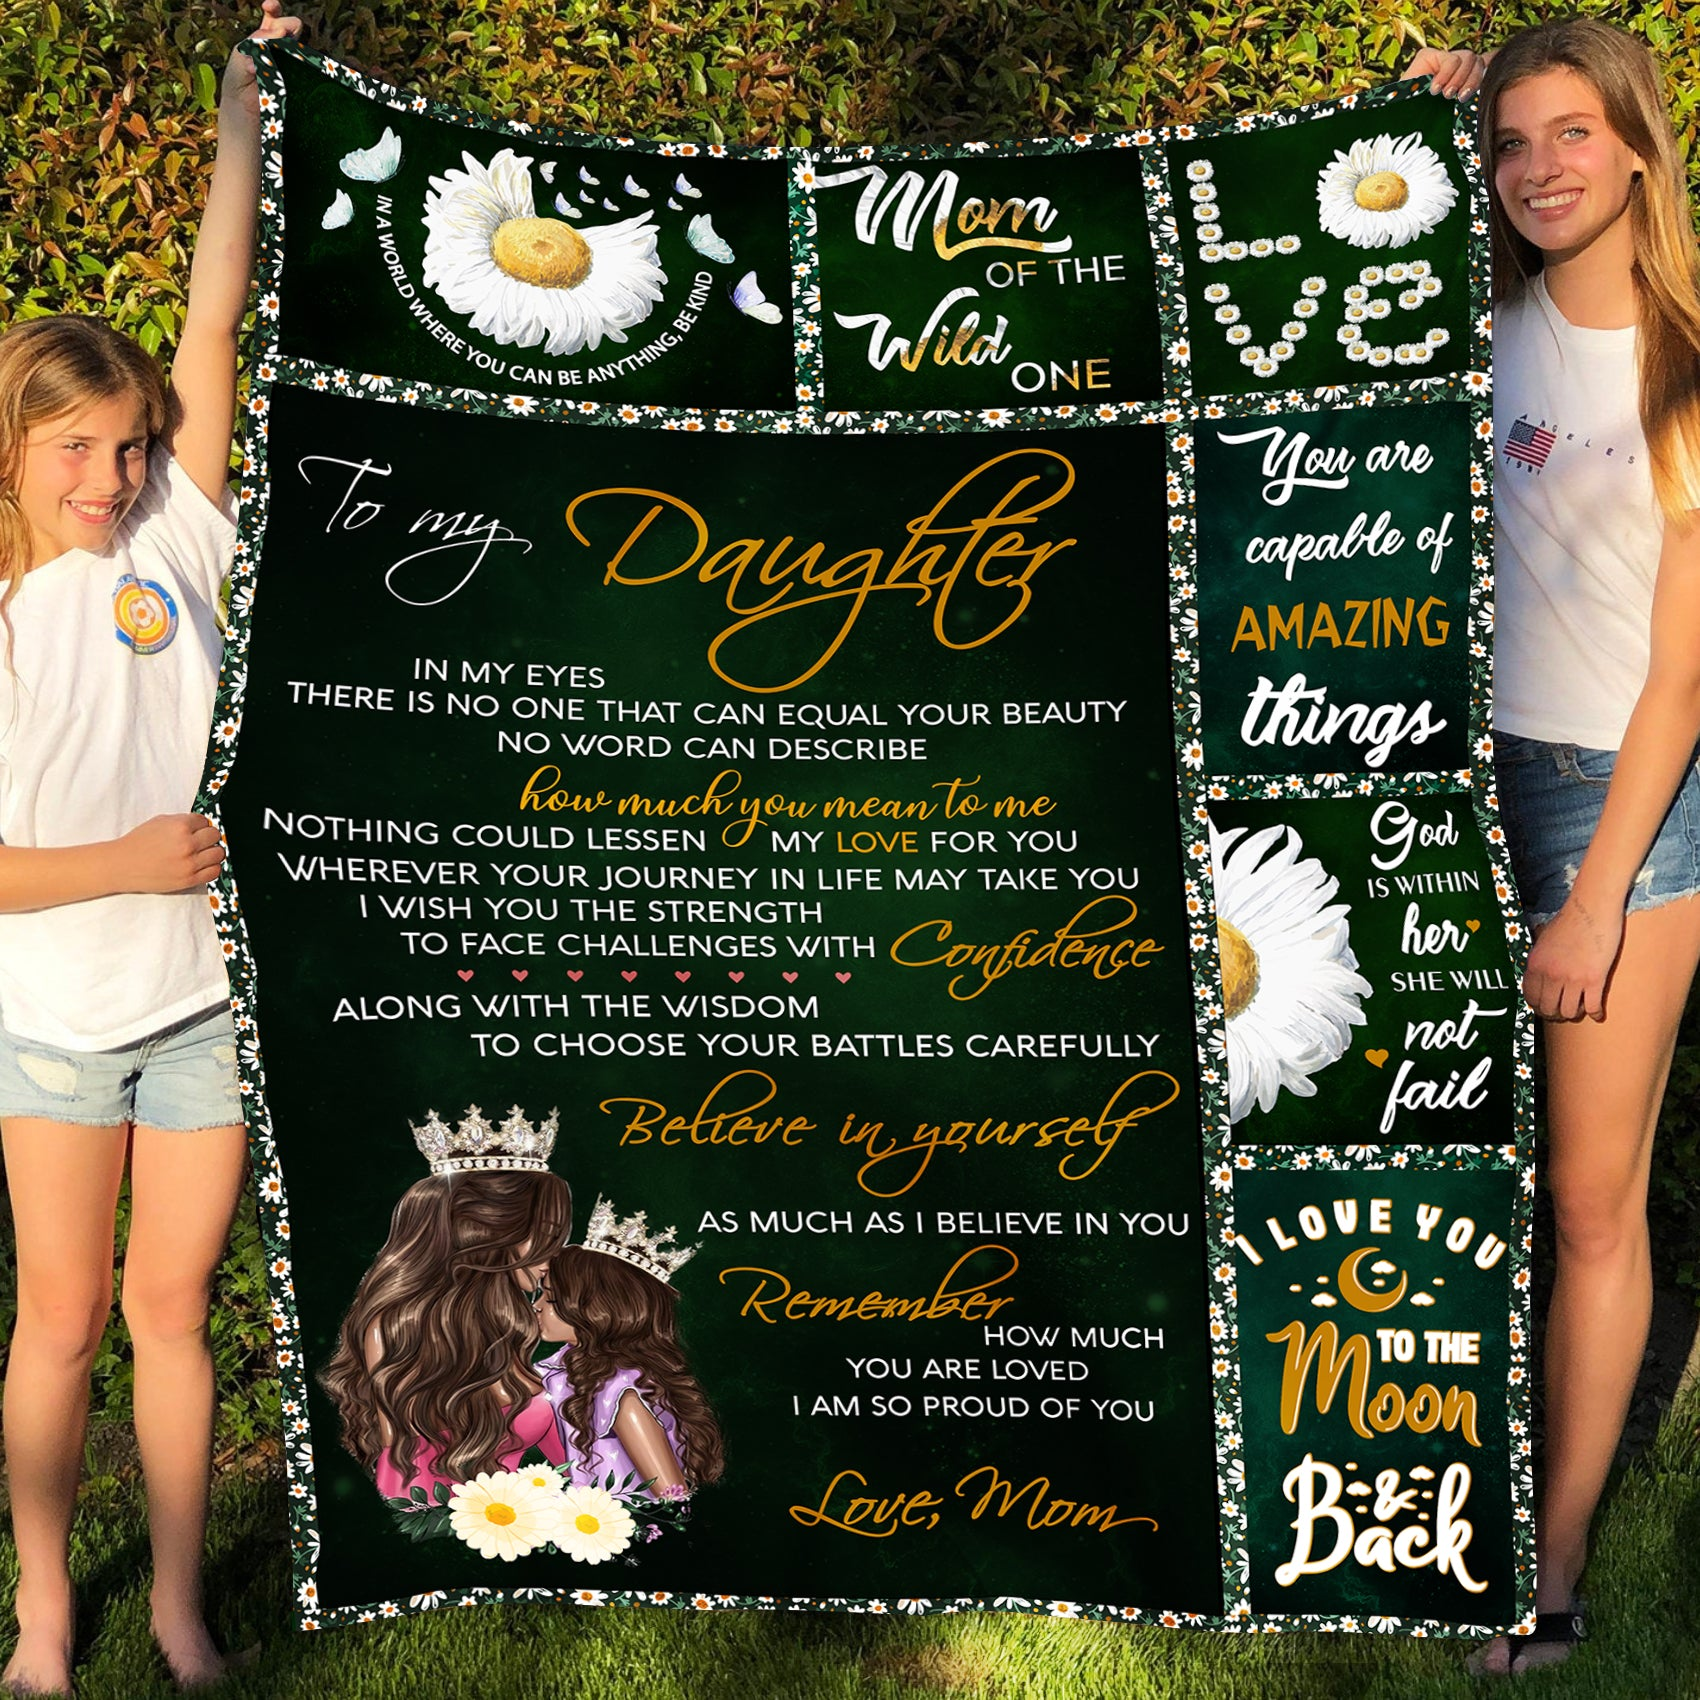 To my daughter fleece blanket - My love for you - Gift for daughter from mom - Birthday gifts, blanket with quotes - 783